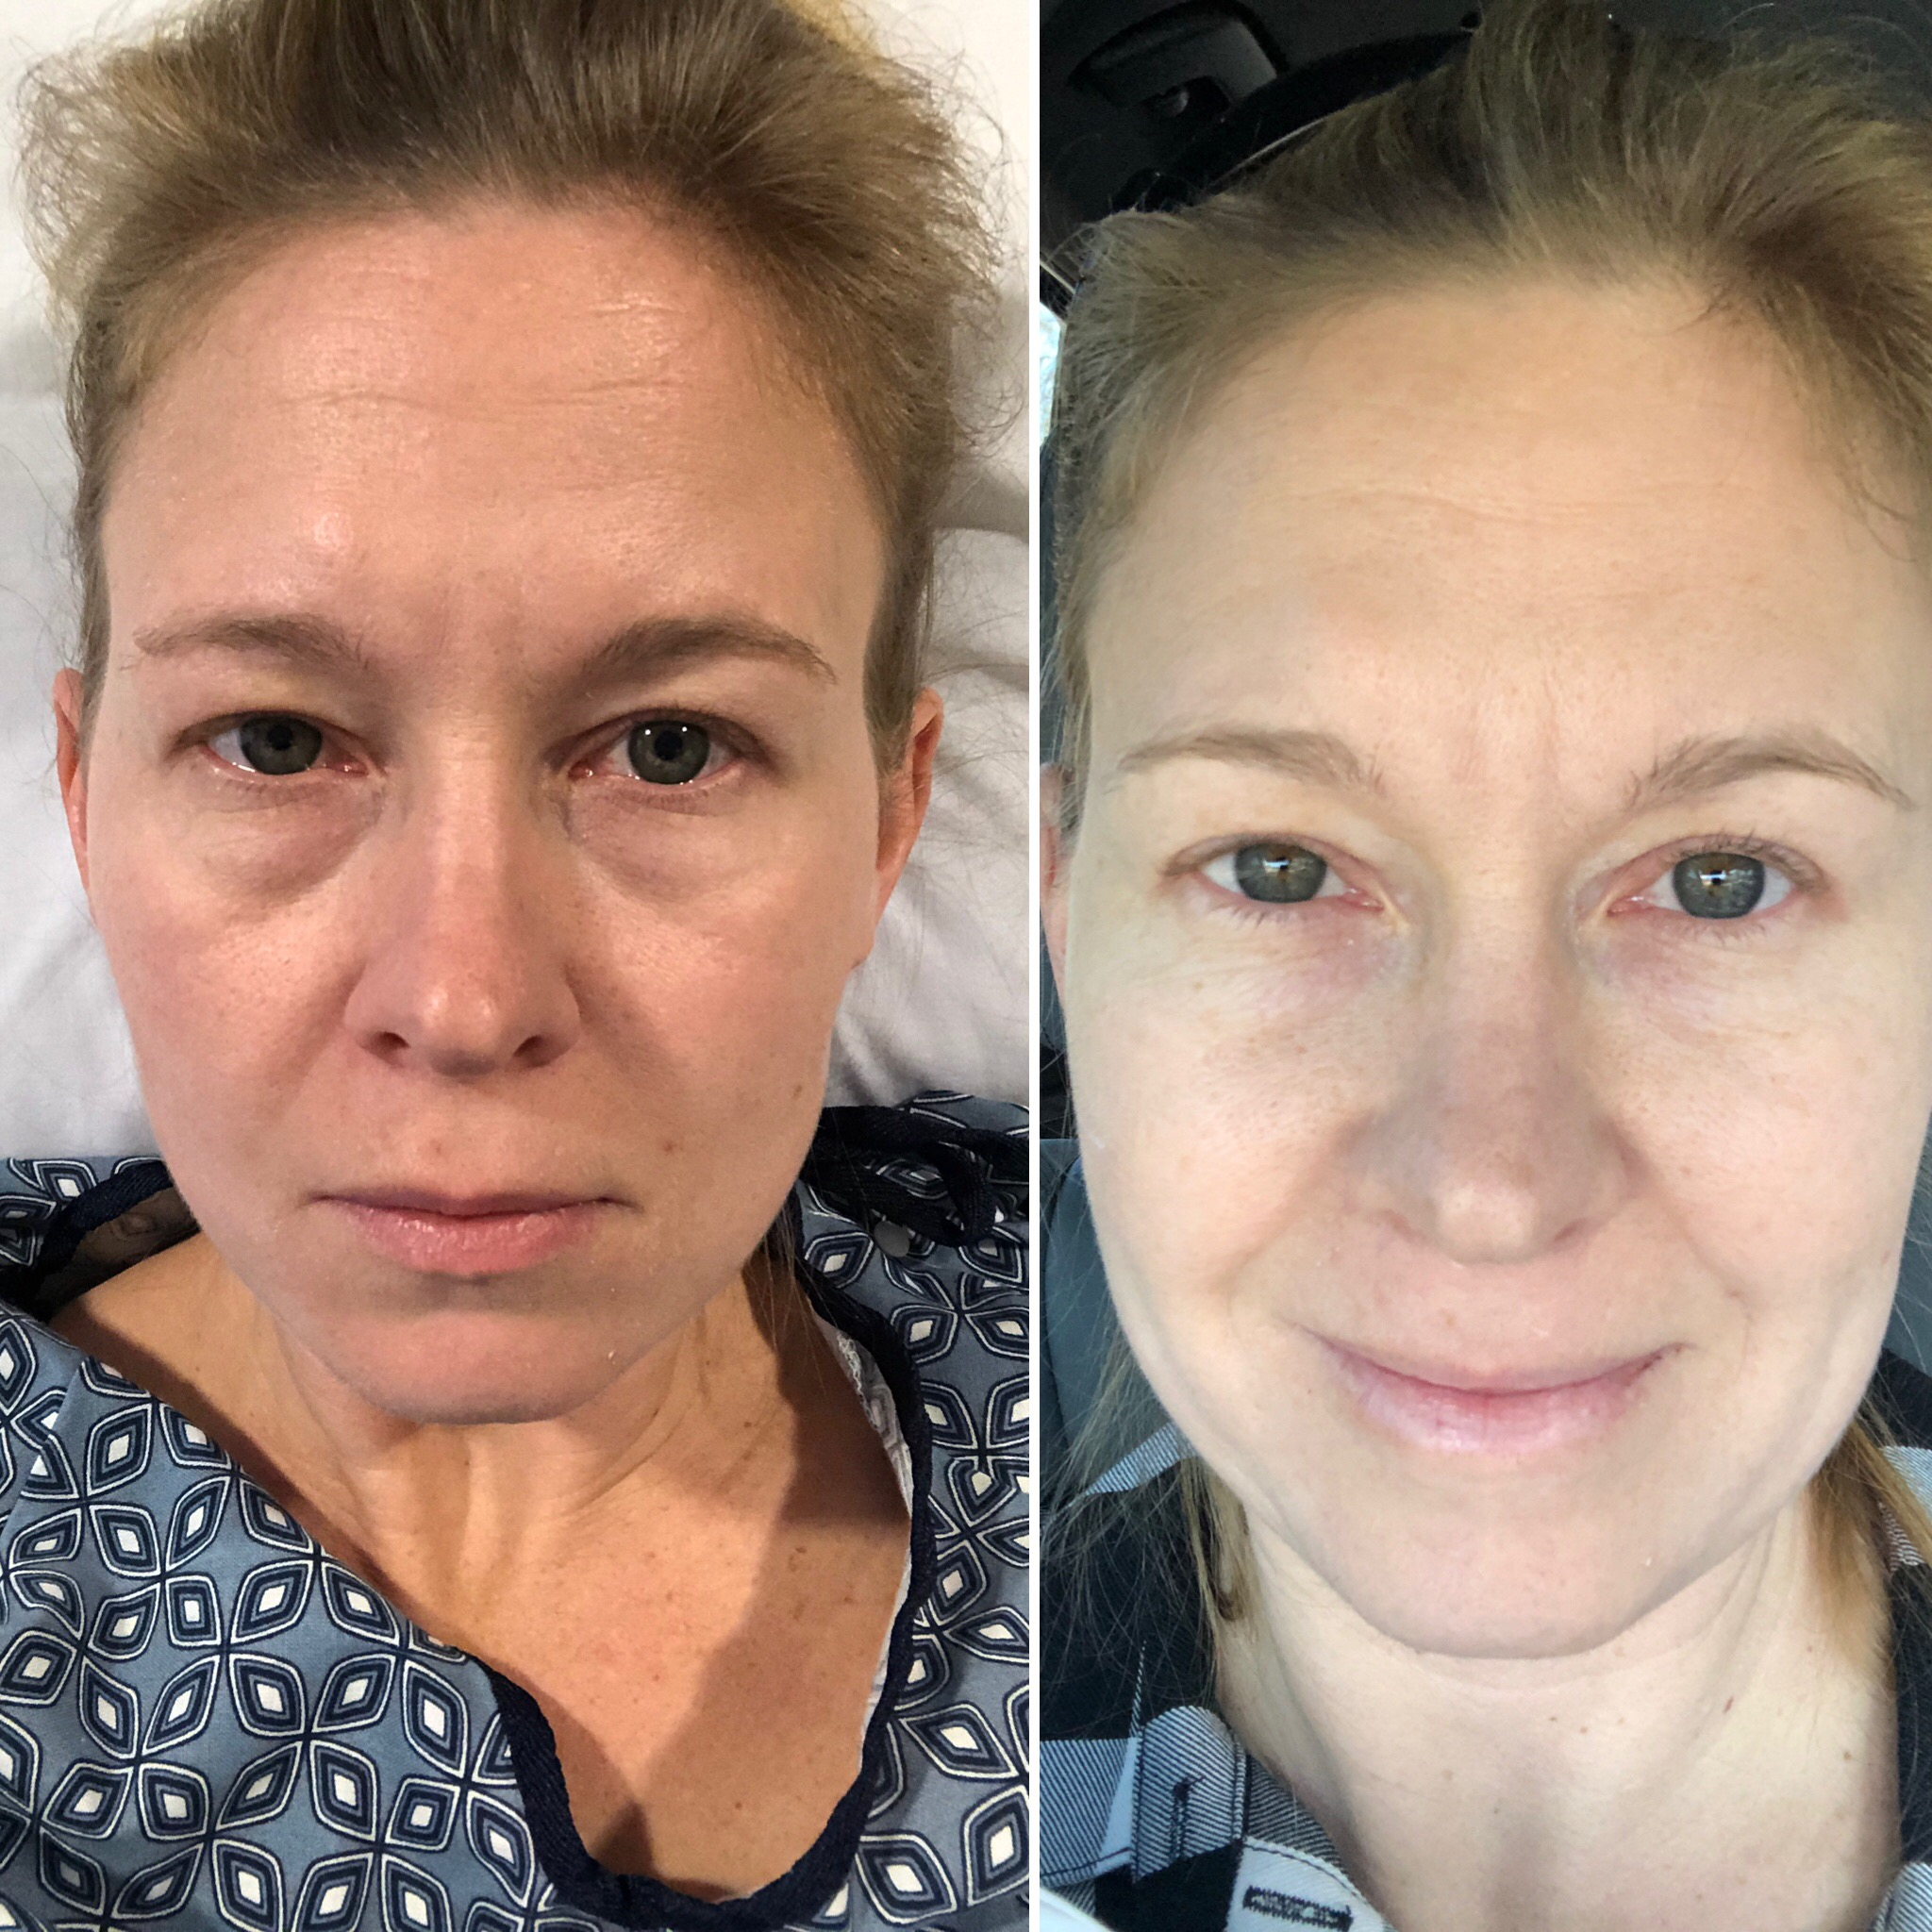 Left:  Pre-Surgery in the hospital bed  Right:  Post- A little drowsy, post-Surgery in the car on the way home.